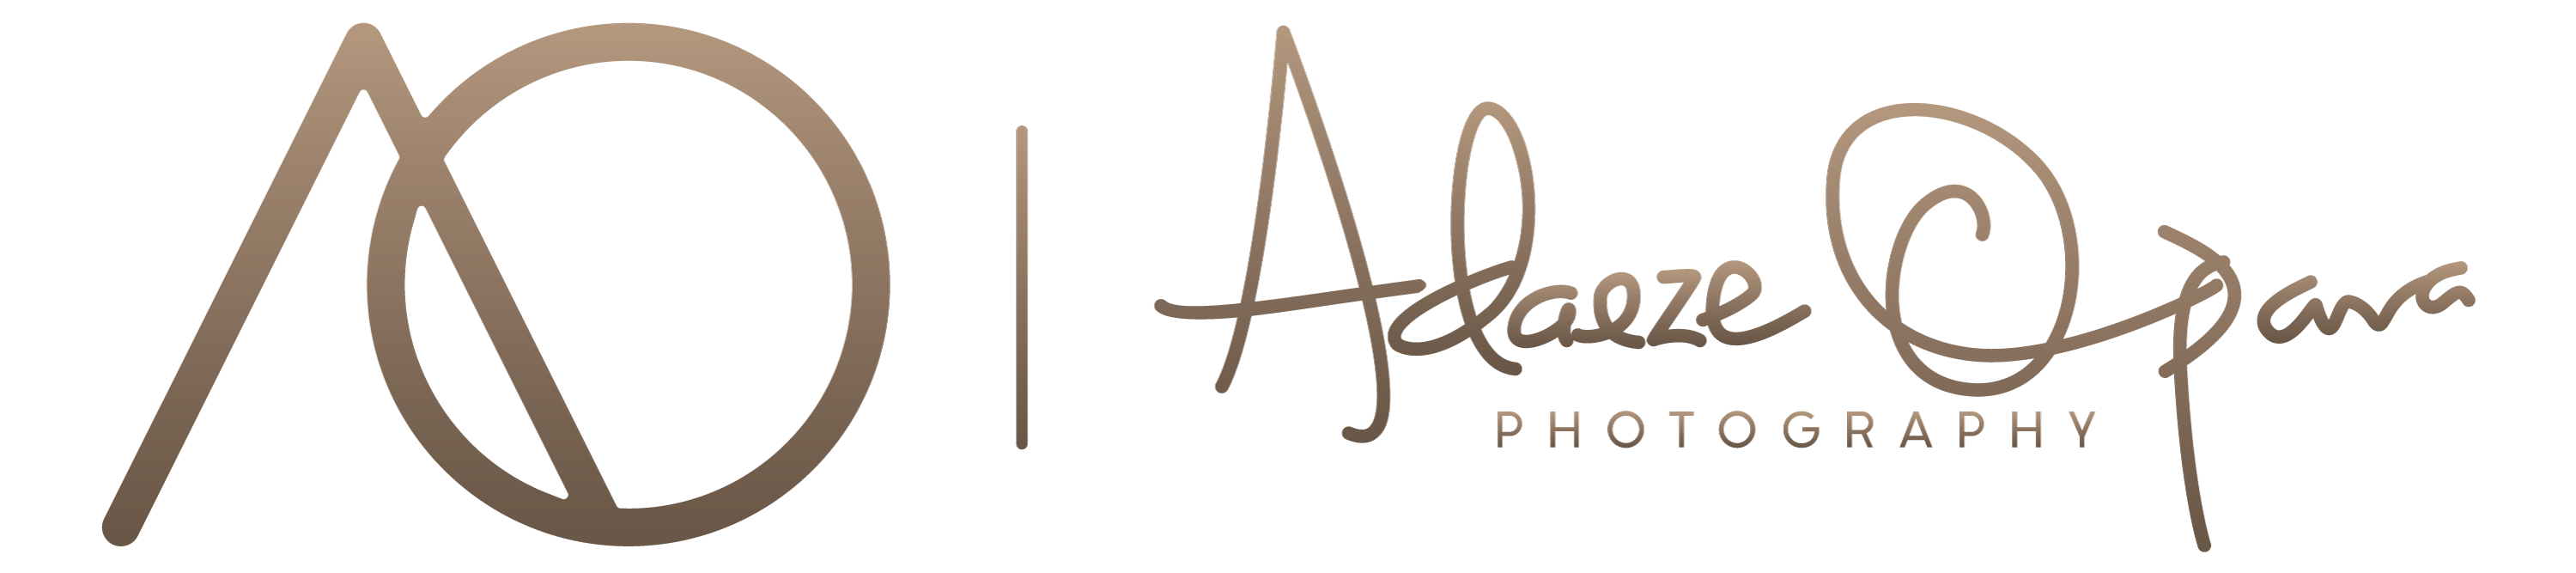 Adaeze Opara Photography | Scottsdale • Phoenix • AZ | Women's Portraits • Family • Modern Headshots